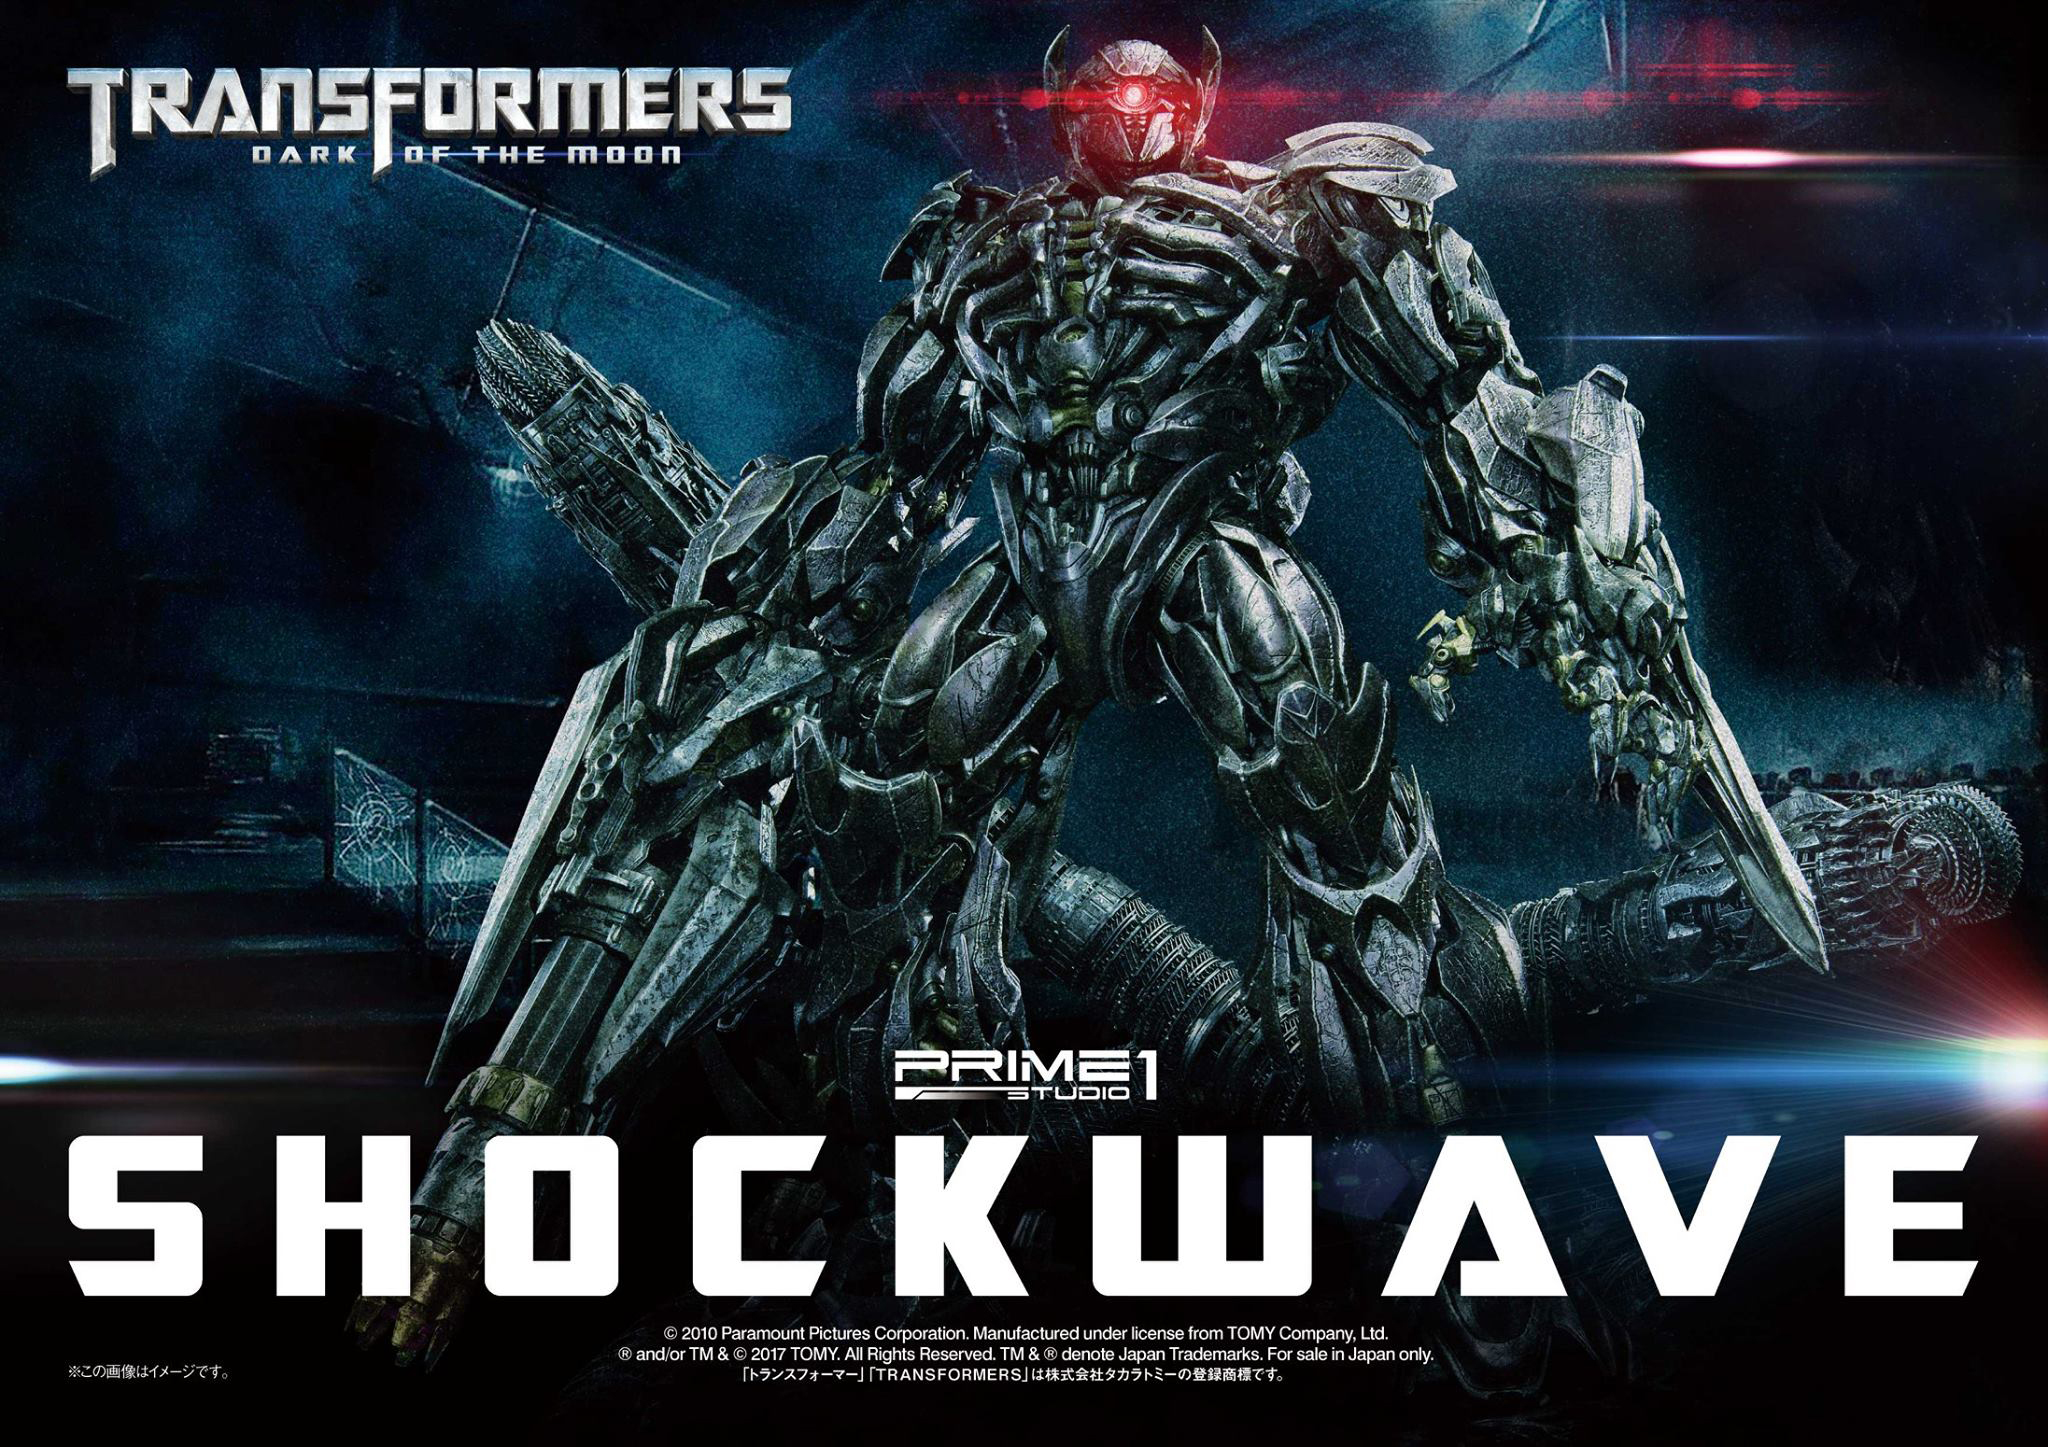 transformers-dark-of-the-moon-shockwave-statue-prime-1-studio